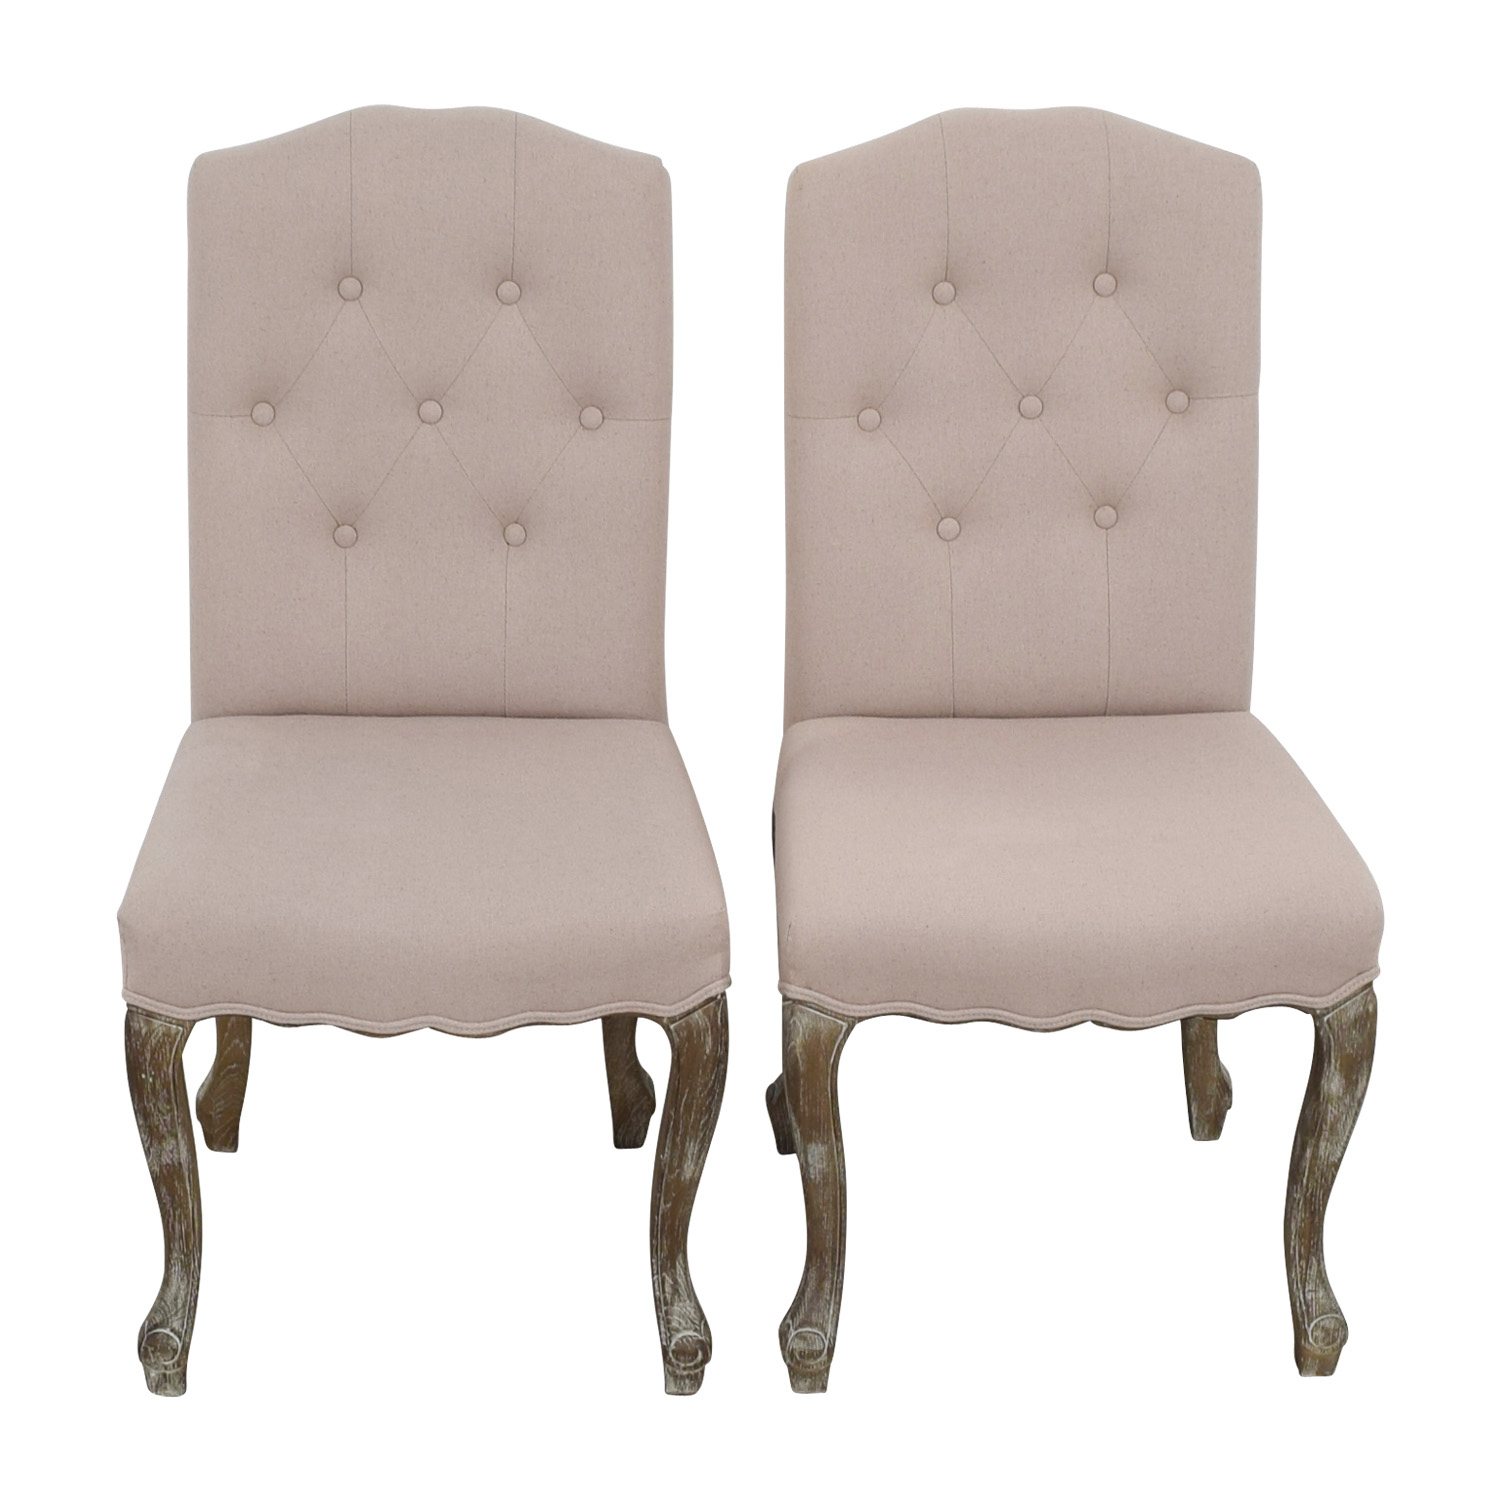 Safavieh Safavieh Tufted Beige Side Chairs dimensions